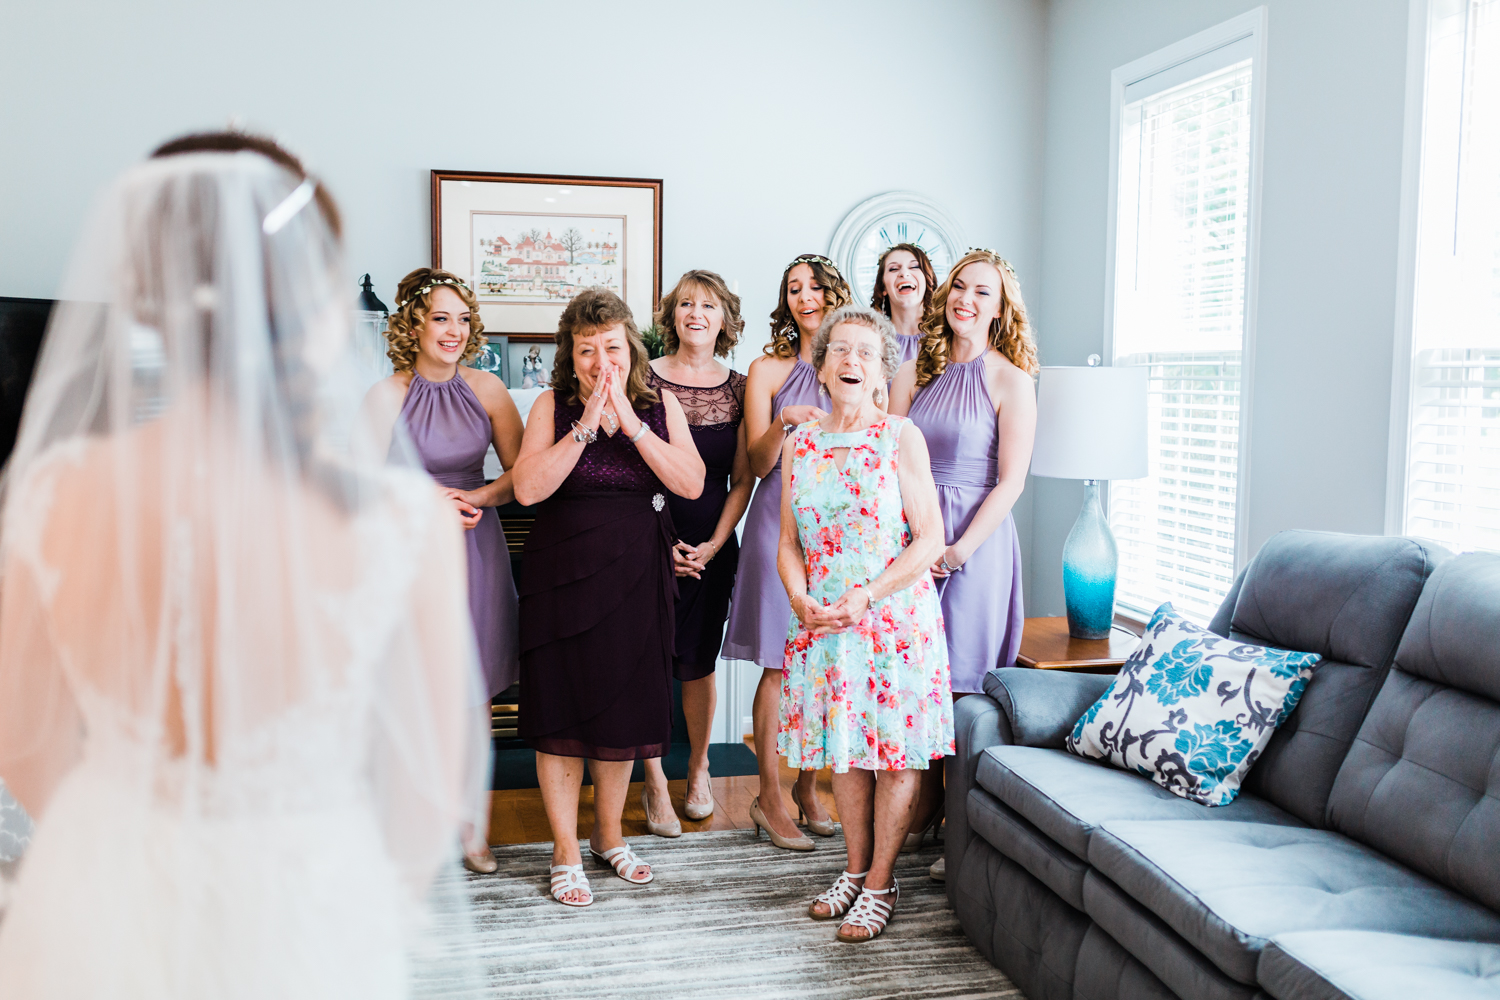 bridesmaids reaction to seeing their friend for the first time